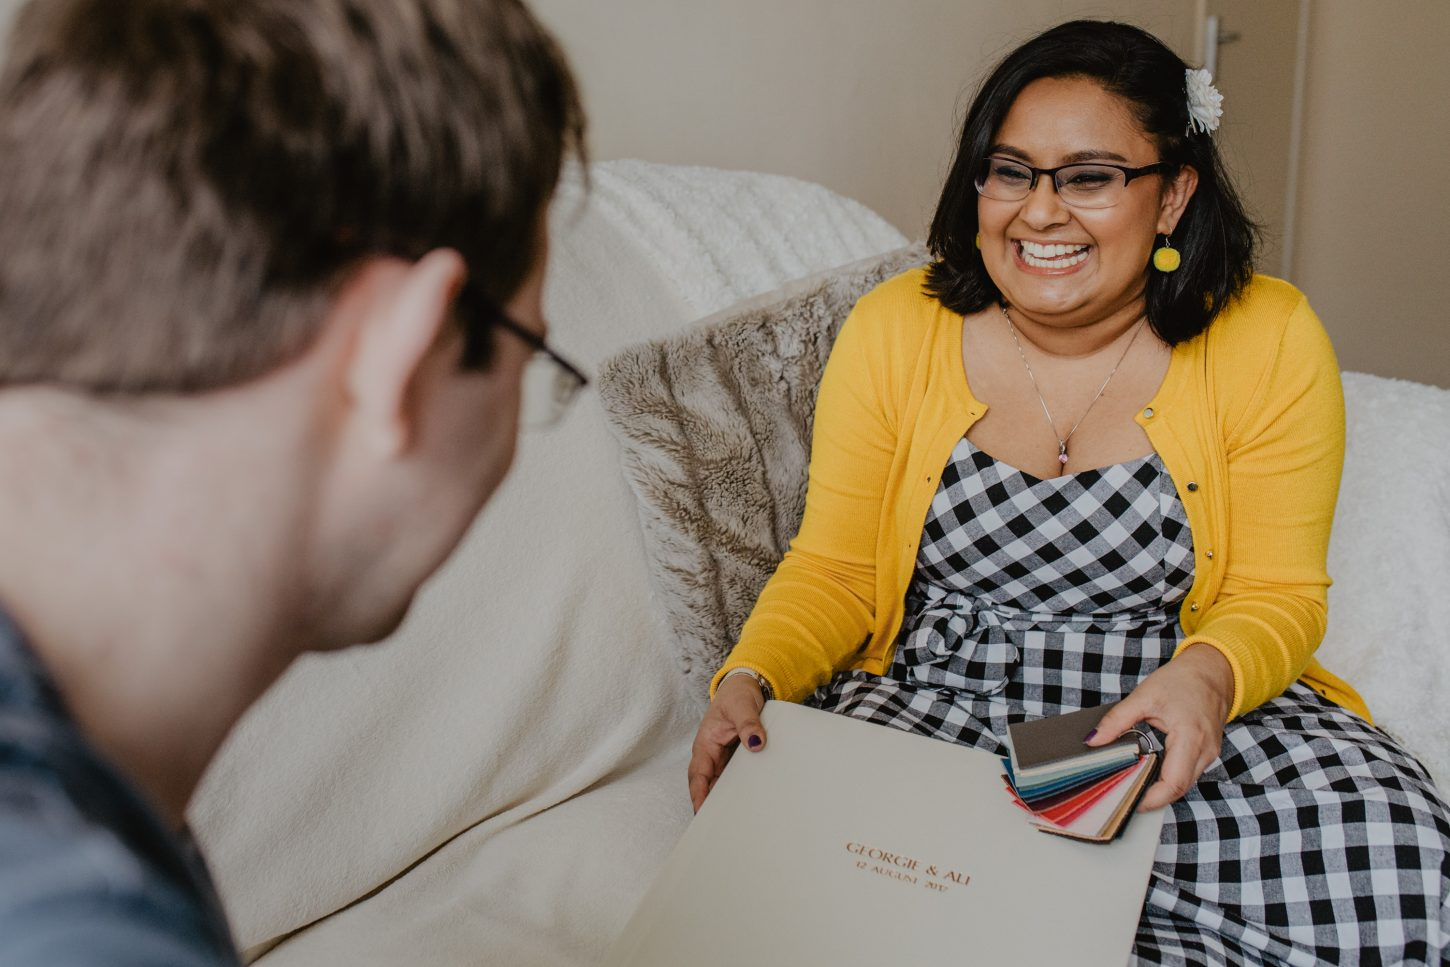 Self-portrait-wedding album consultation - nisha haq photography